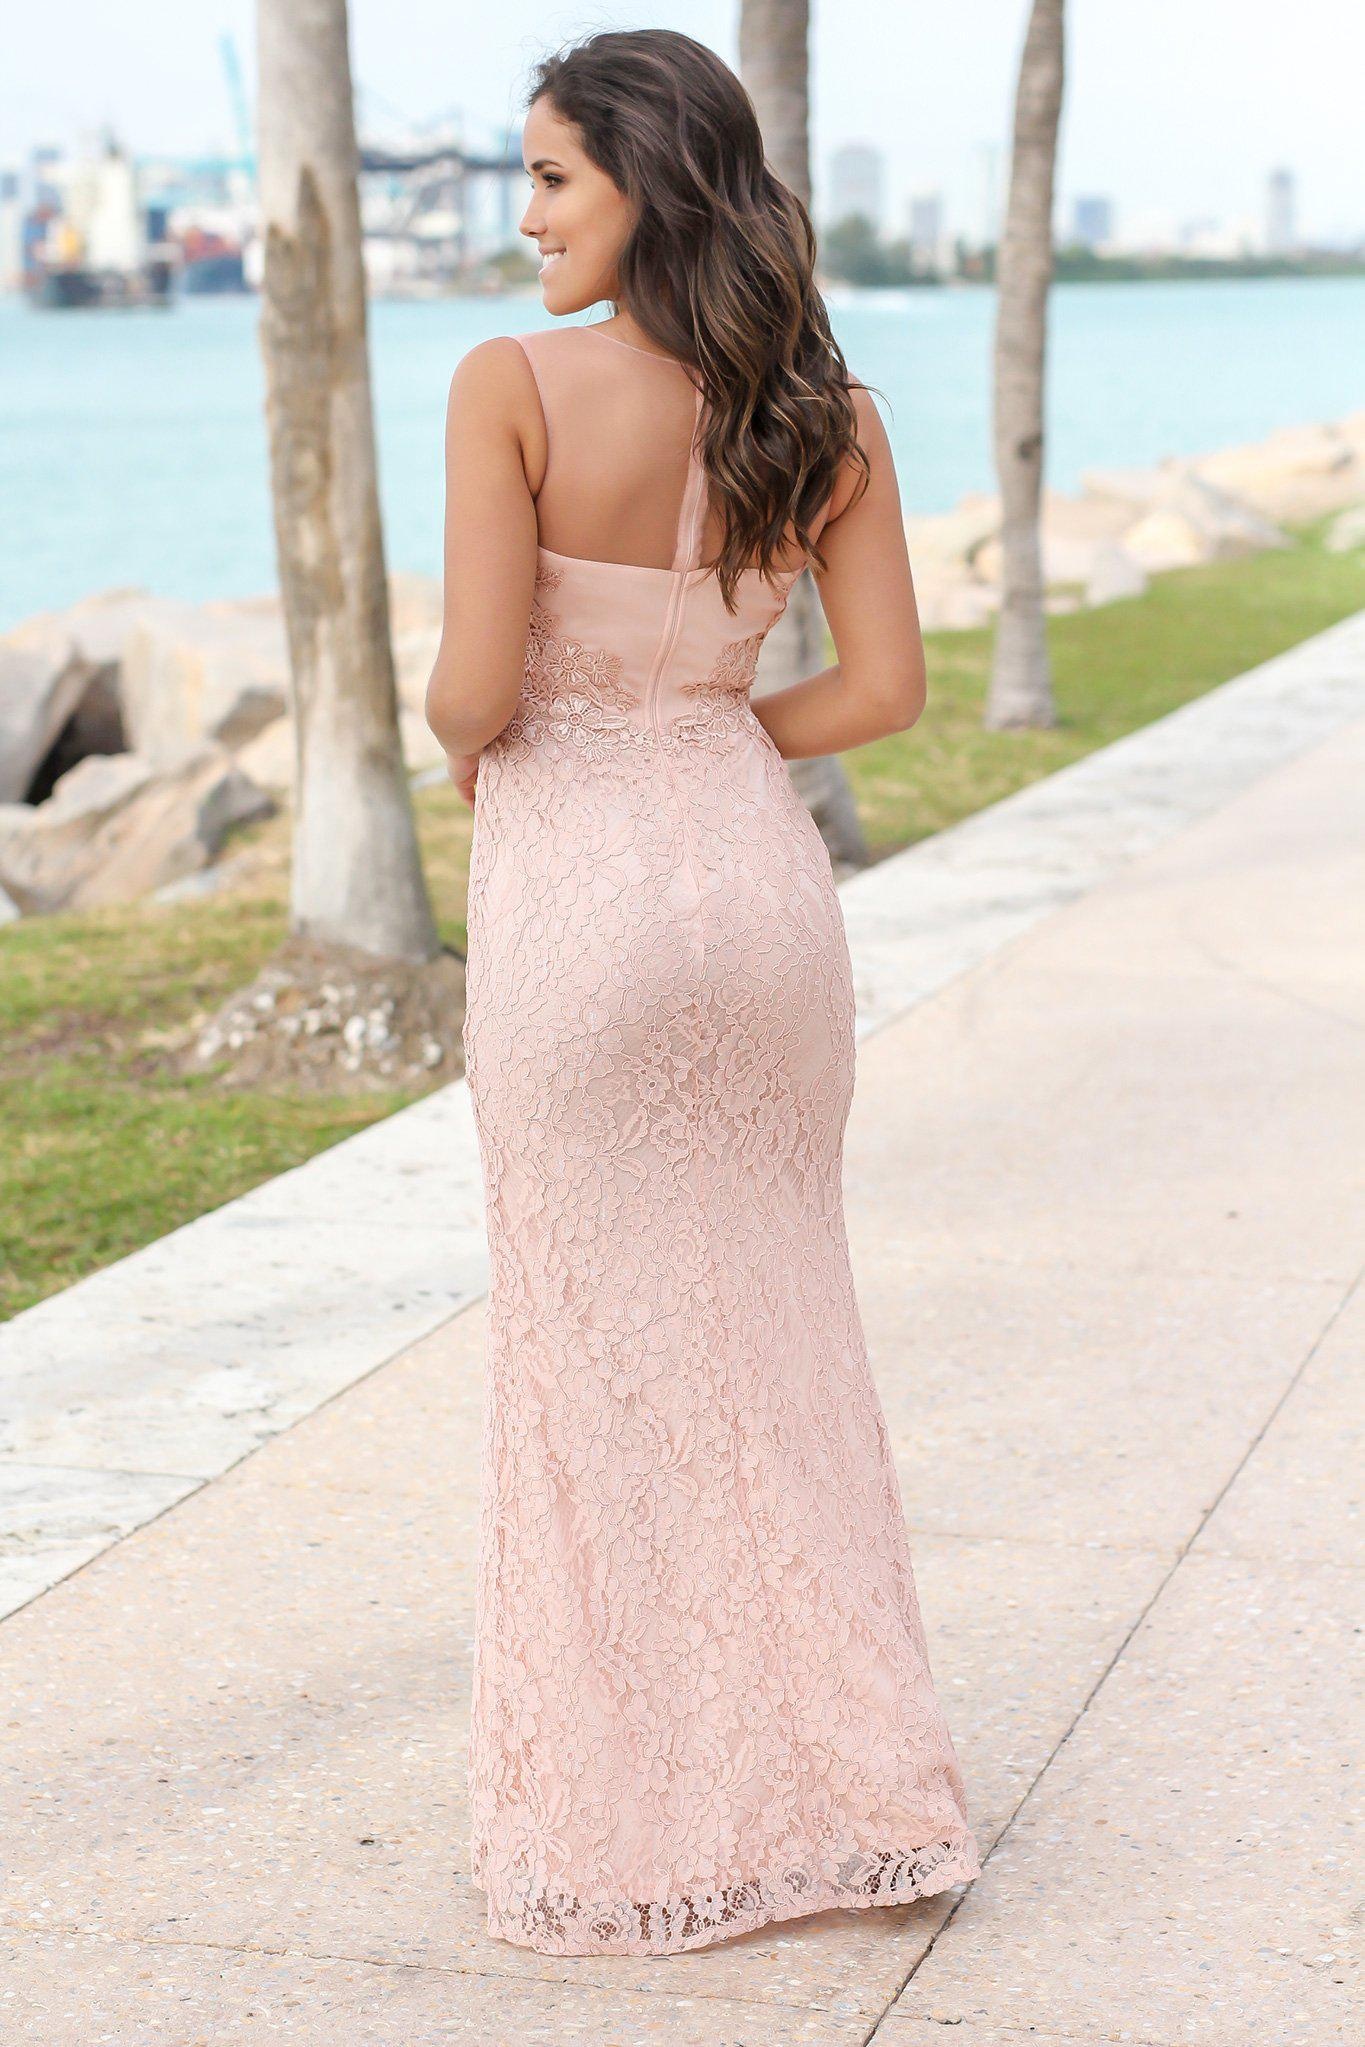 Blush Lace Maxi Dress with Mesh Detail